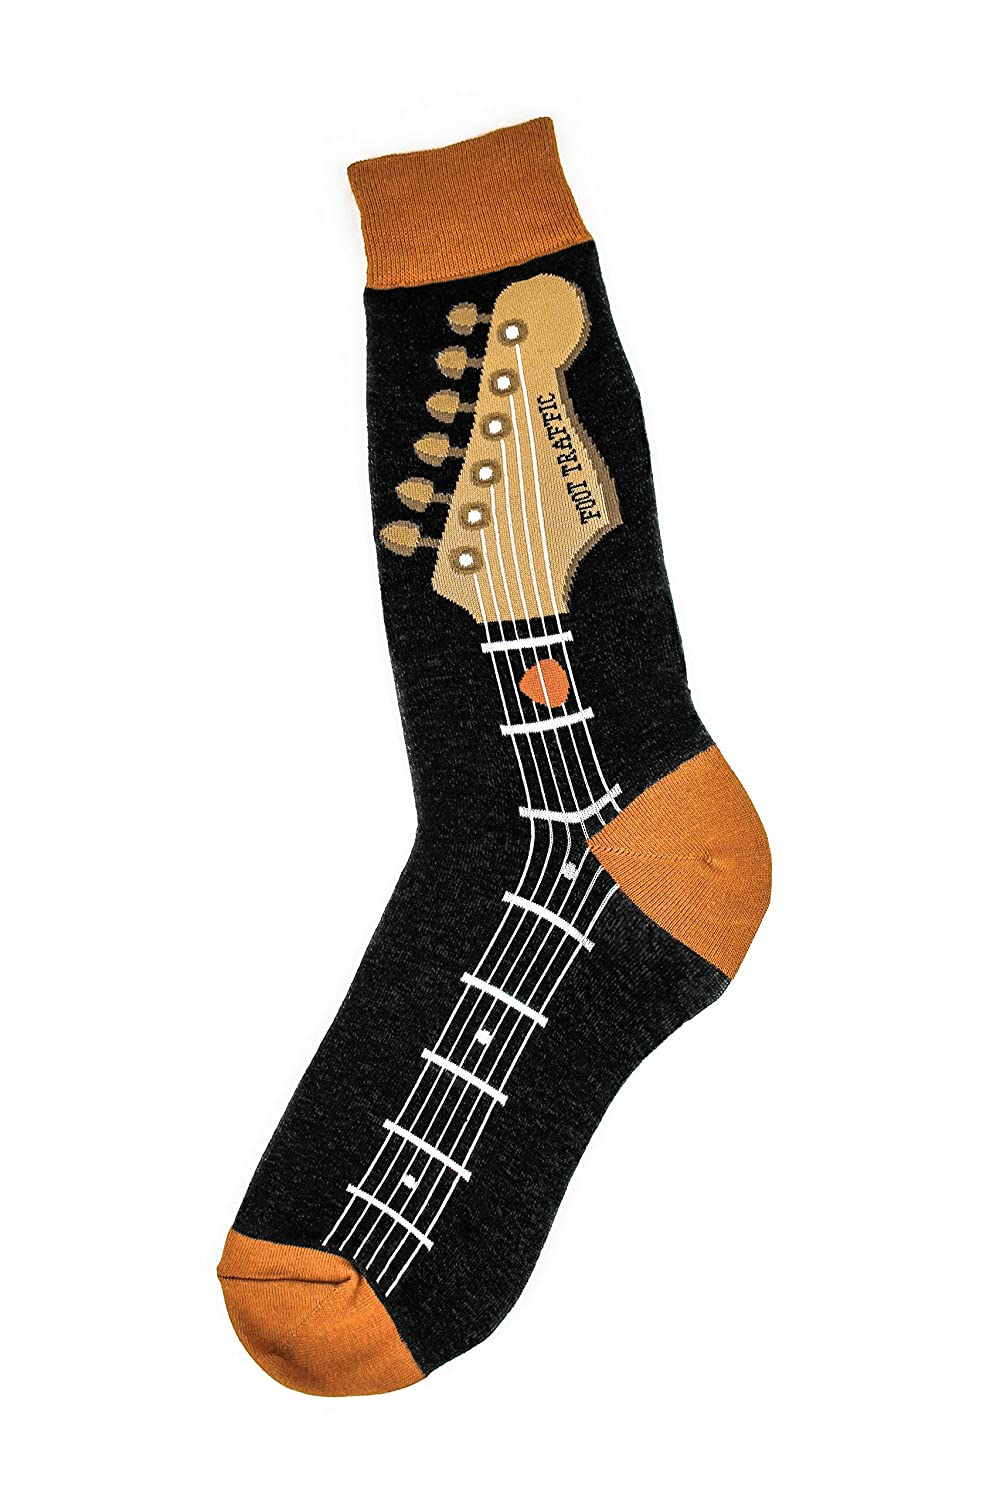 Foot Traffic - Men's Music-Themed Socks, Fits Men's Shoe Sizes 7-12 6880M